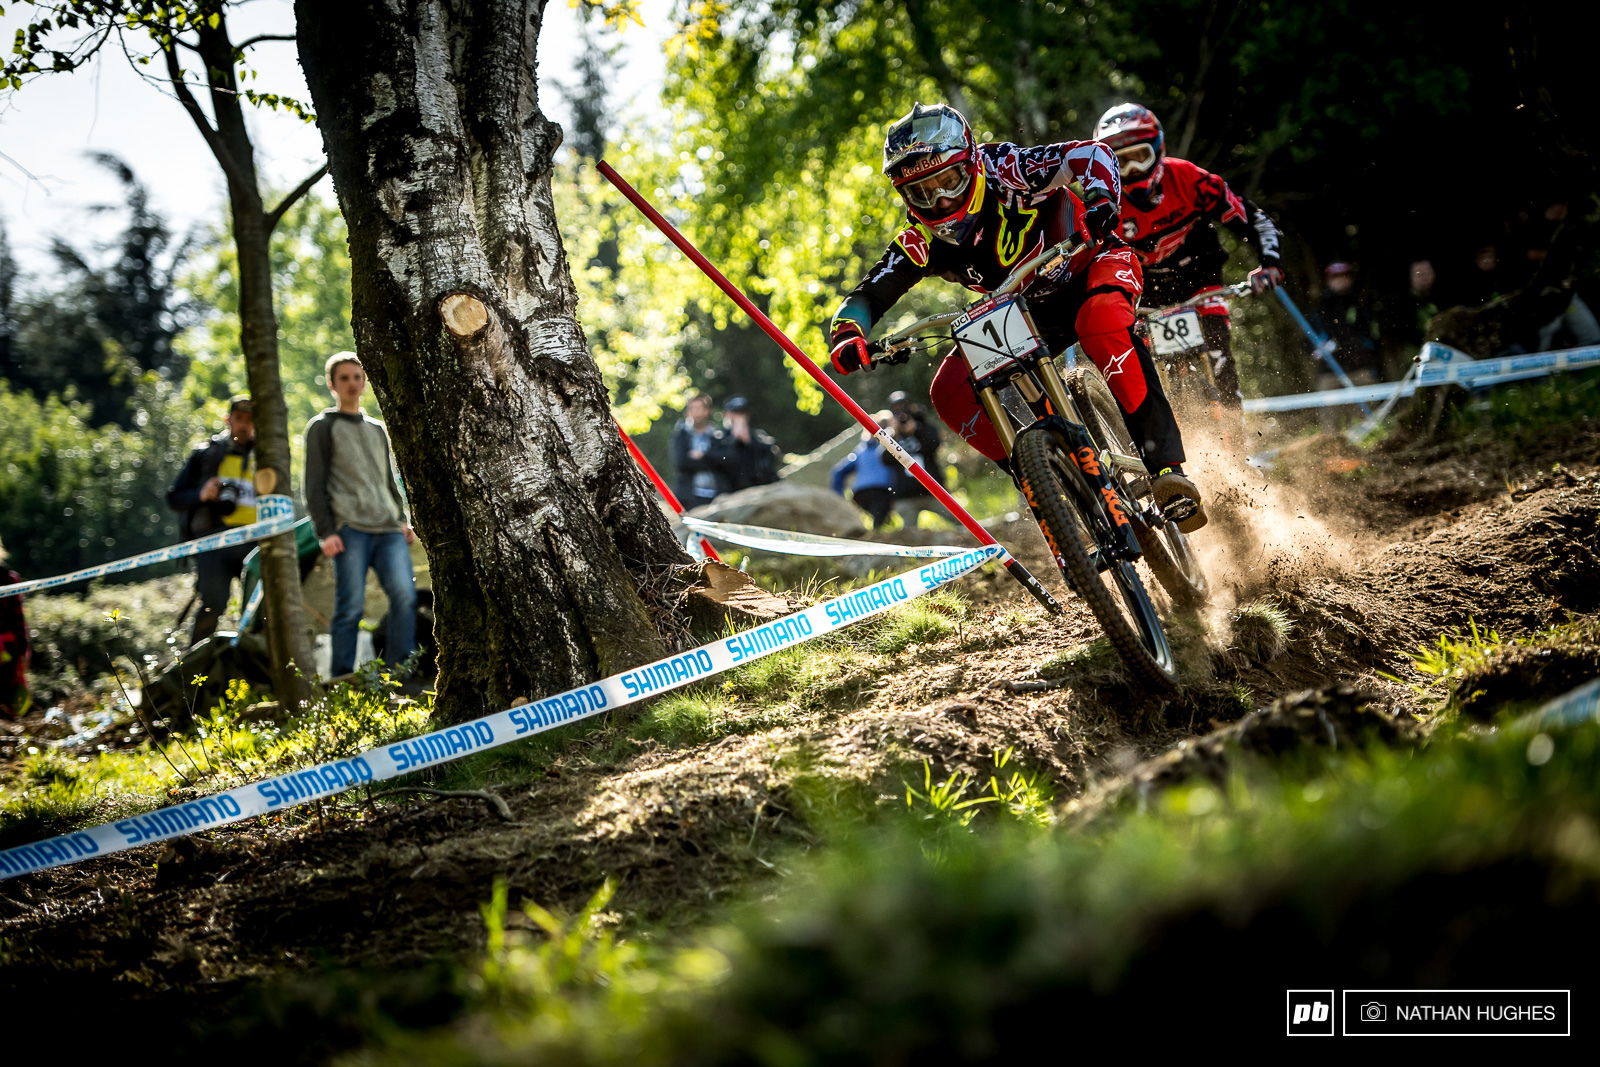 The only other rider in recent memory who seems to like to ride so little and still pull out the top results is Sam Hill. Gwin rode just 3 laps yesterday and only one disjointed run with Mullaly this morning before arriving in 5th place for qualies. How does he do it